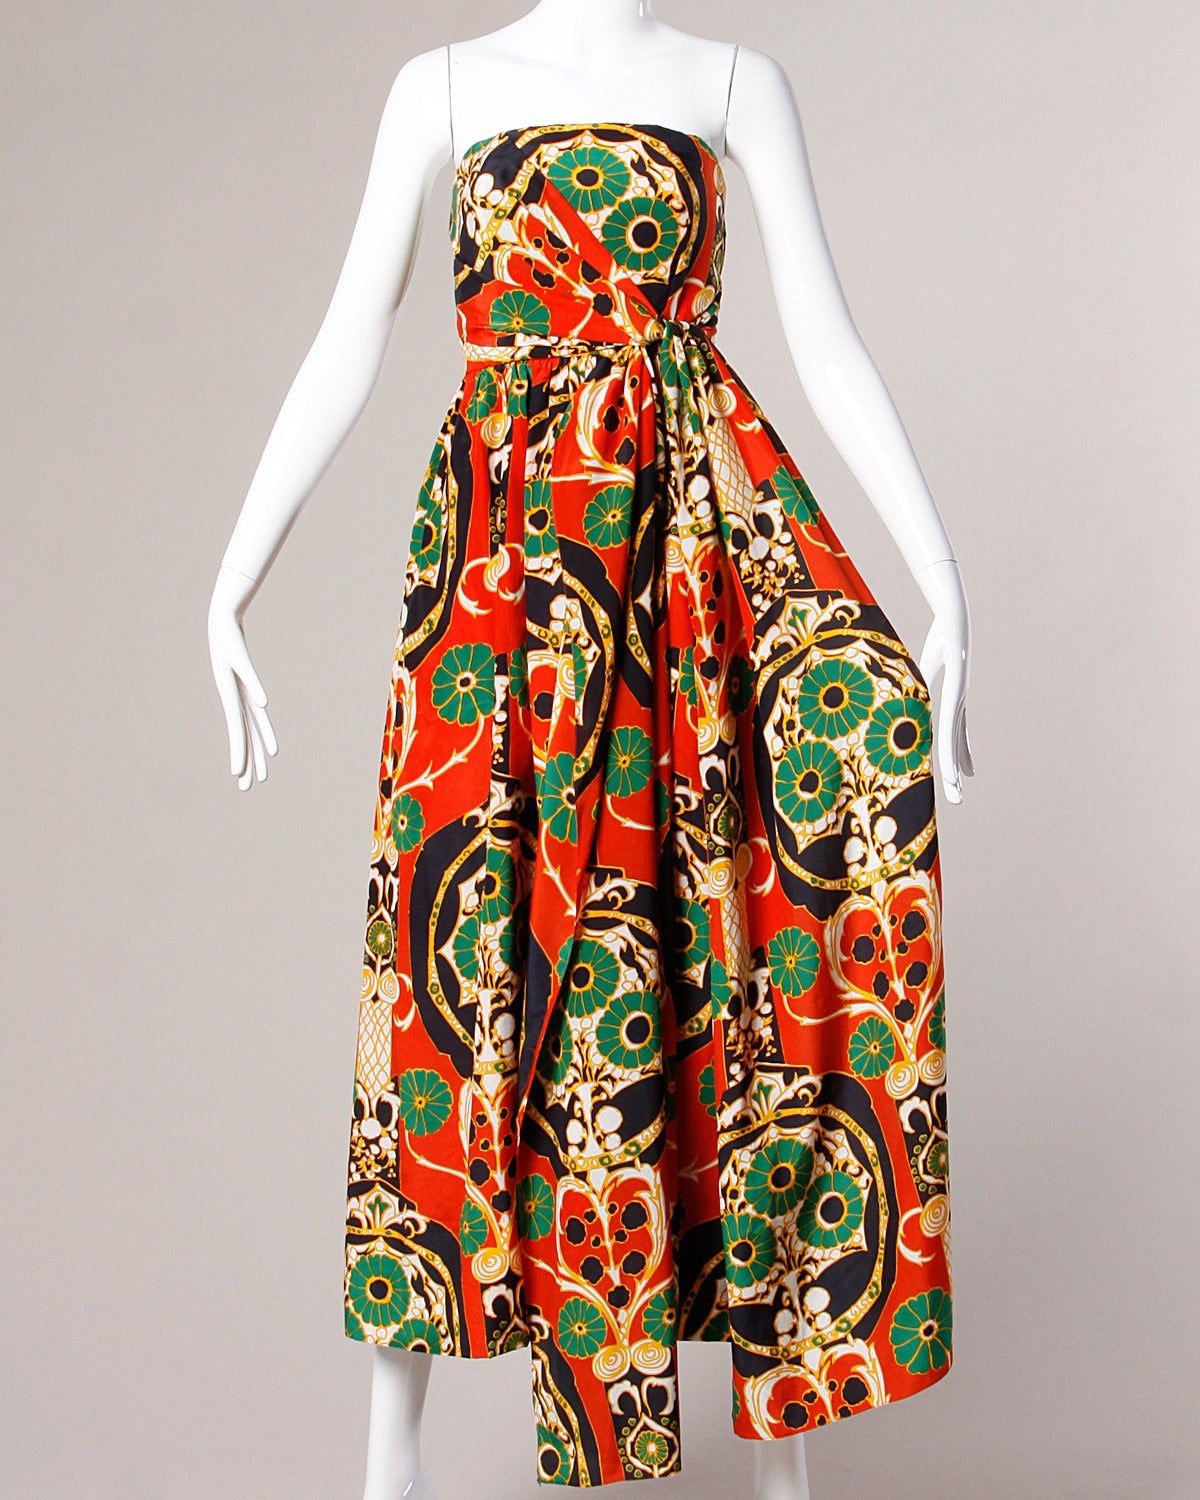 Reduced from $1895. Stunning vintage two-piece ensemble by Donald Brooks featuring a strapless wrap-style gown and matching capelet. Both pieces are done in a vibrant Asian-inspired printed creamy silk and can be worn separately as well as together